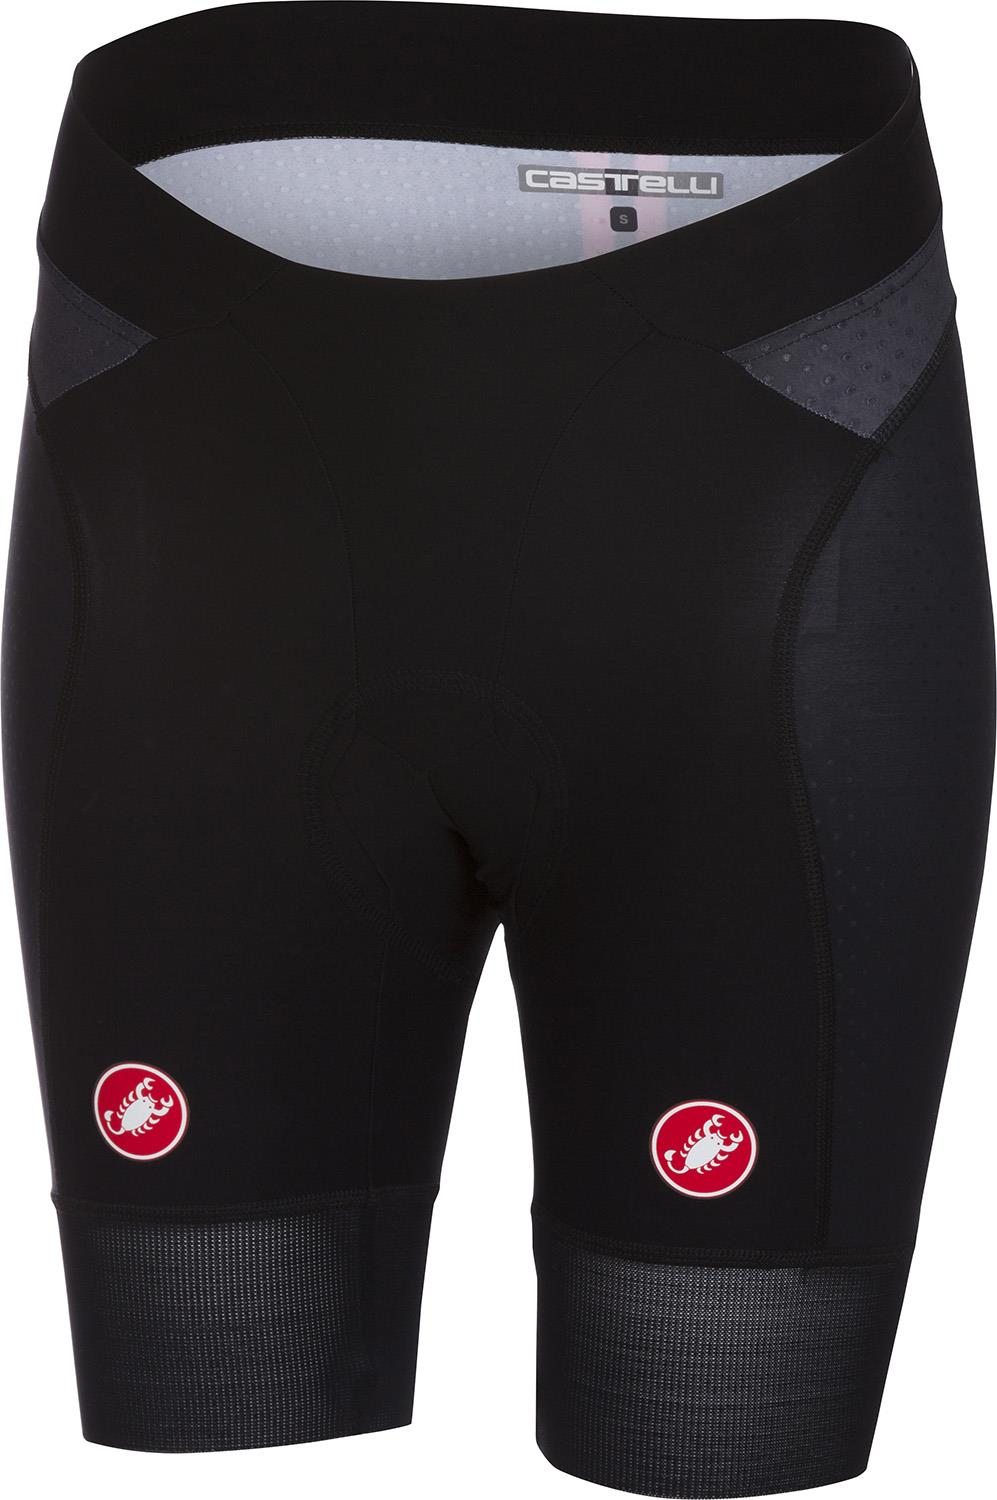 Castelli Free Aero Womens Cycling Shorts - SS18